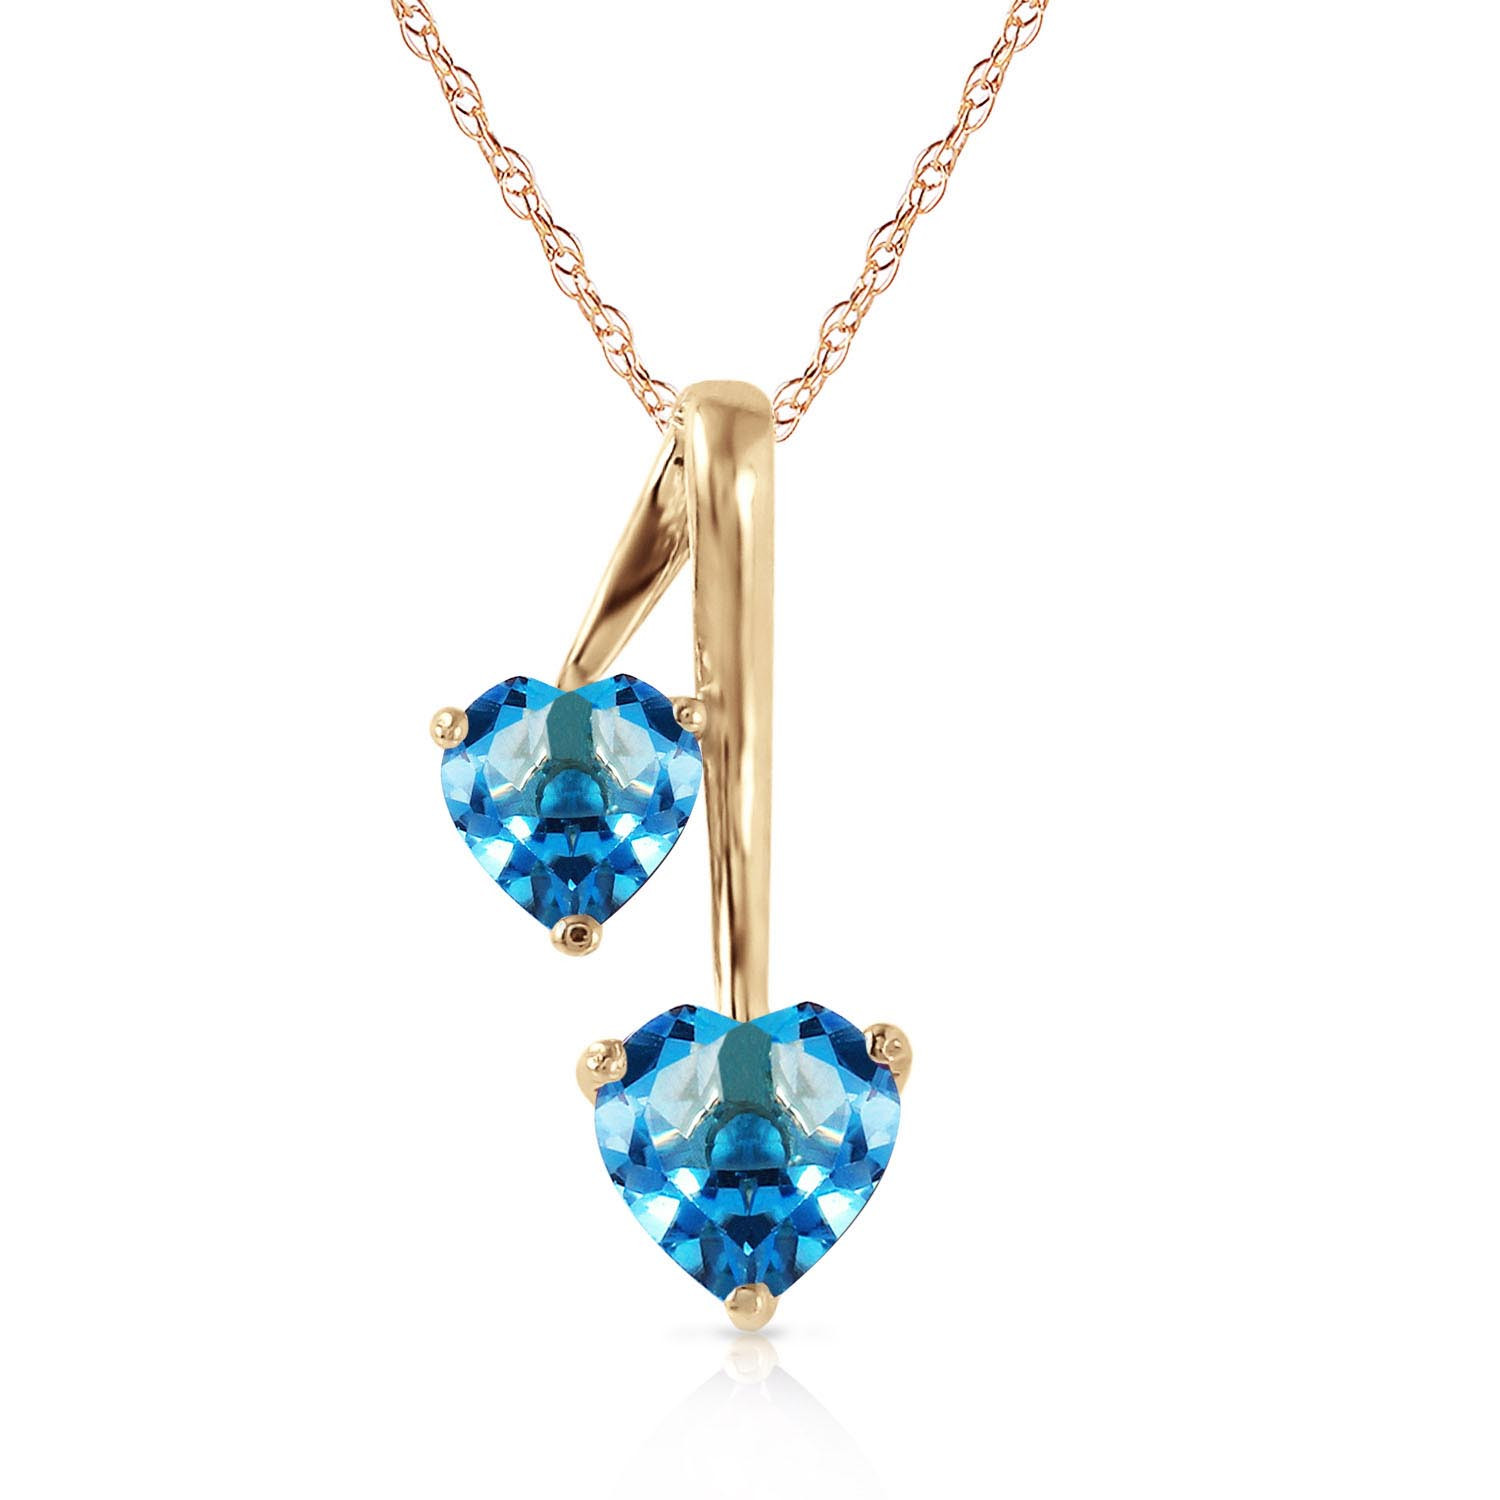 Blue Topaz Twin Pendant Necklace 1.4 ctw in 9ct Gold